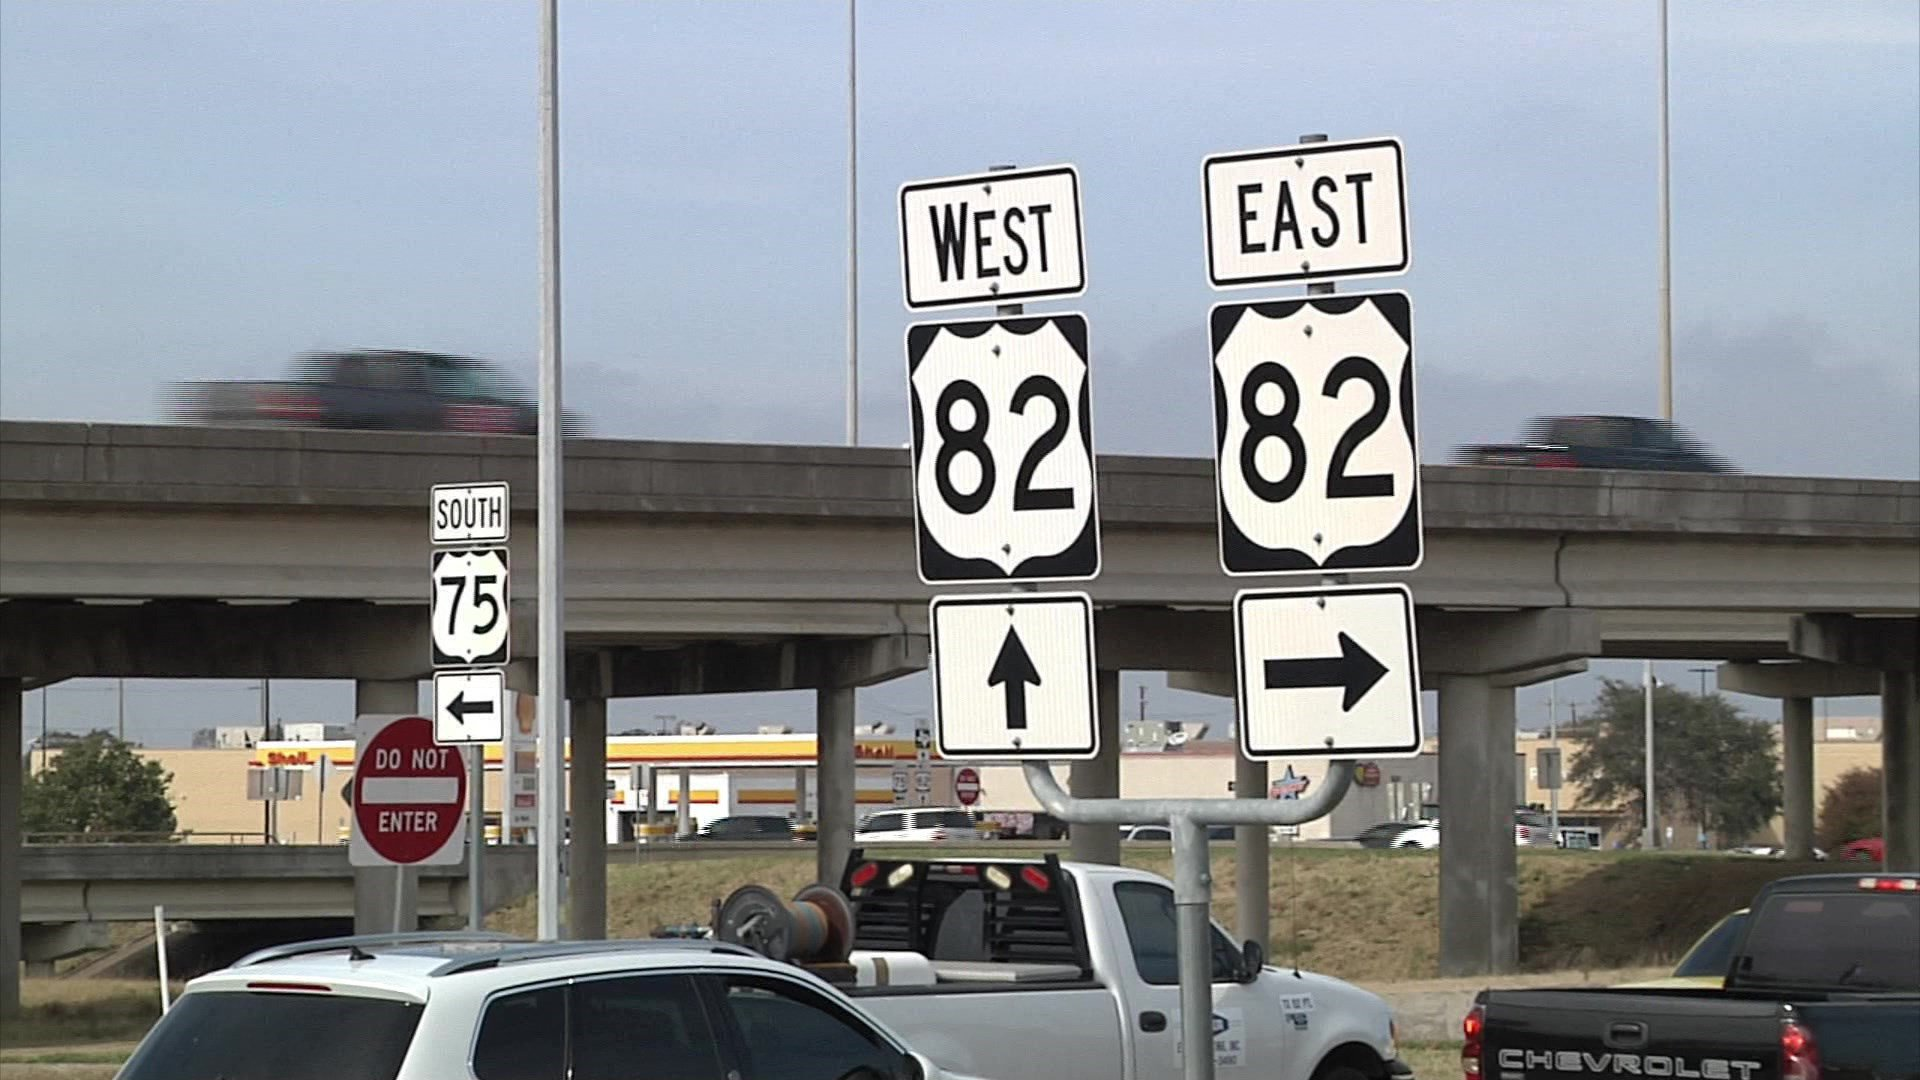 The intersection of U.S. 75 and U.S. 82 in Sherman will get a major upgrade. (KTEN)